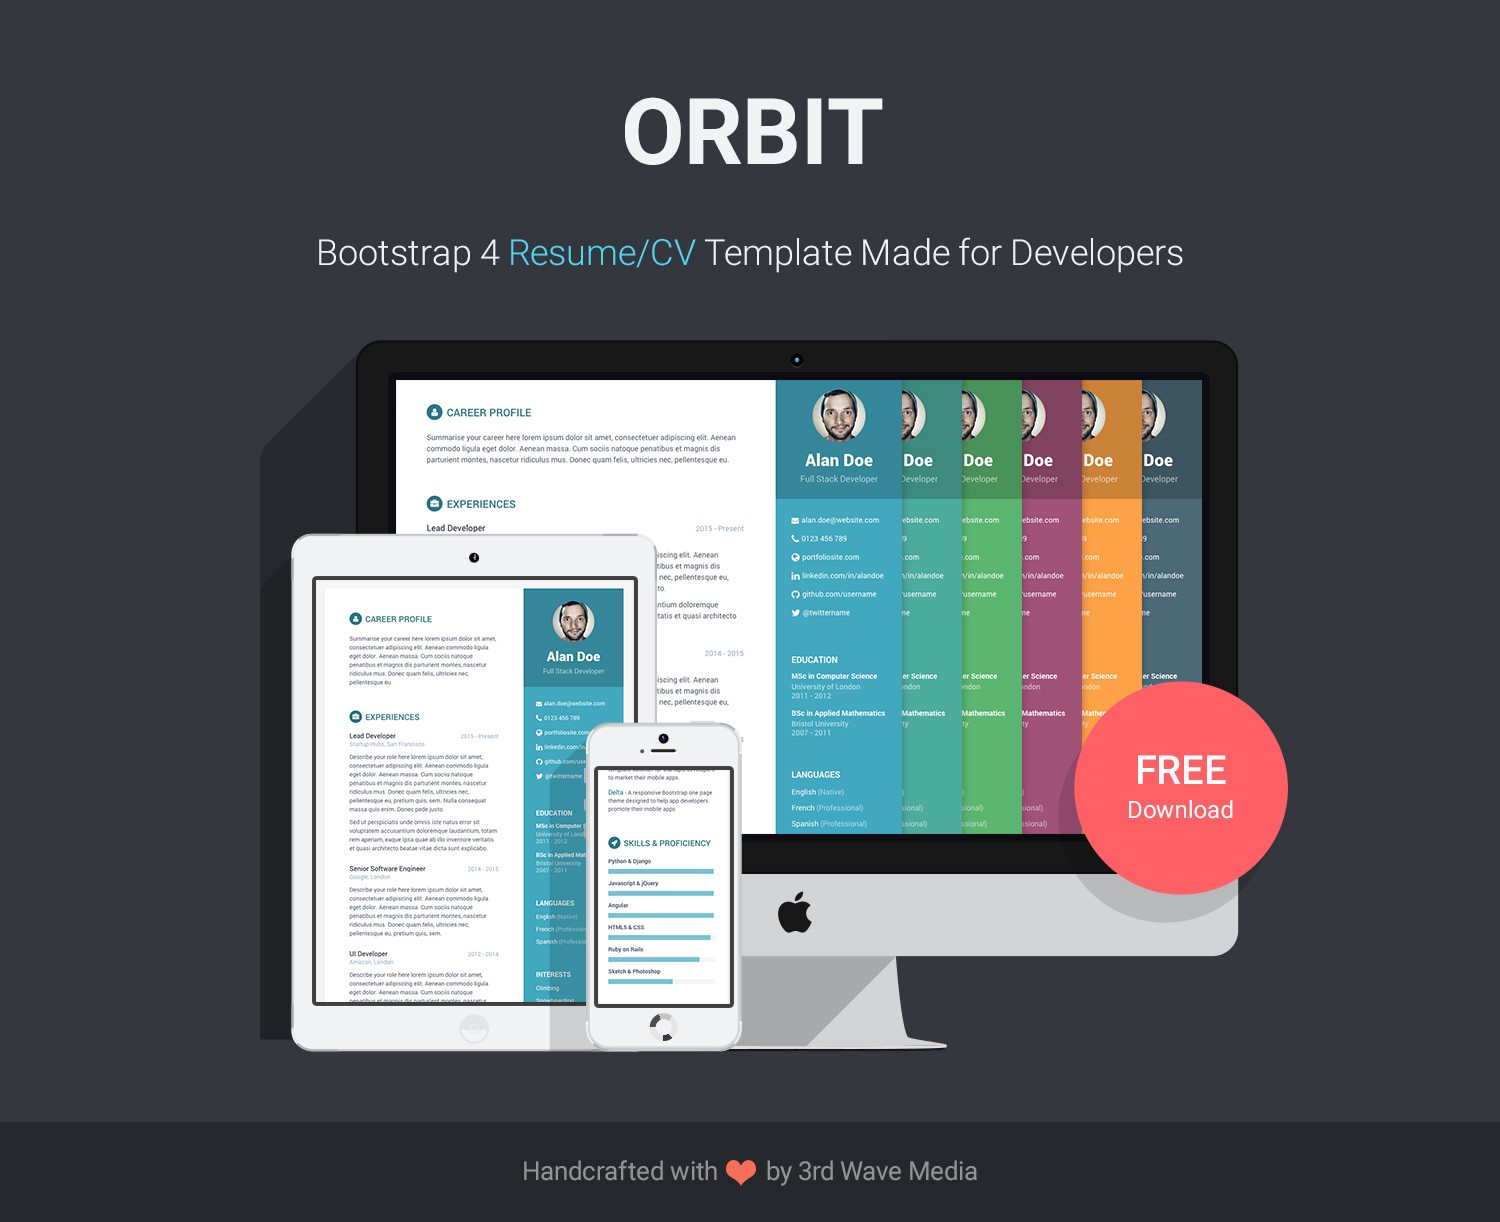 Orbit Is A Free Bootstrap 4 Resume CV Template I Made For Developers Looking To Impress Your Potential Employer Get This And You Can Send An